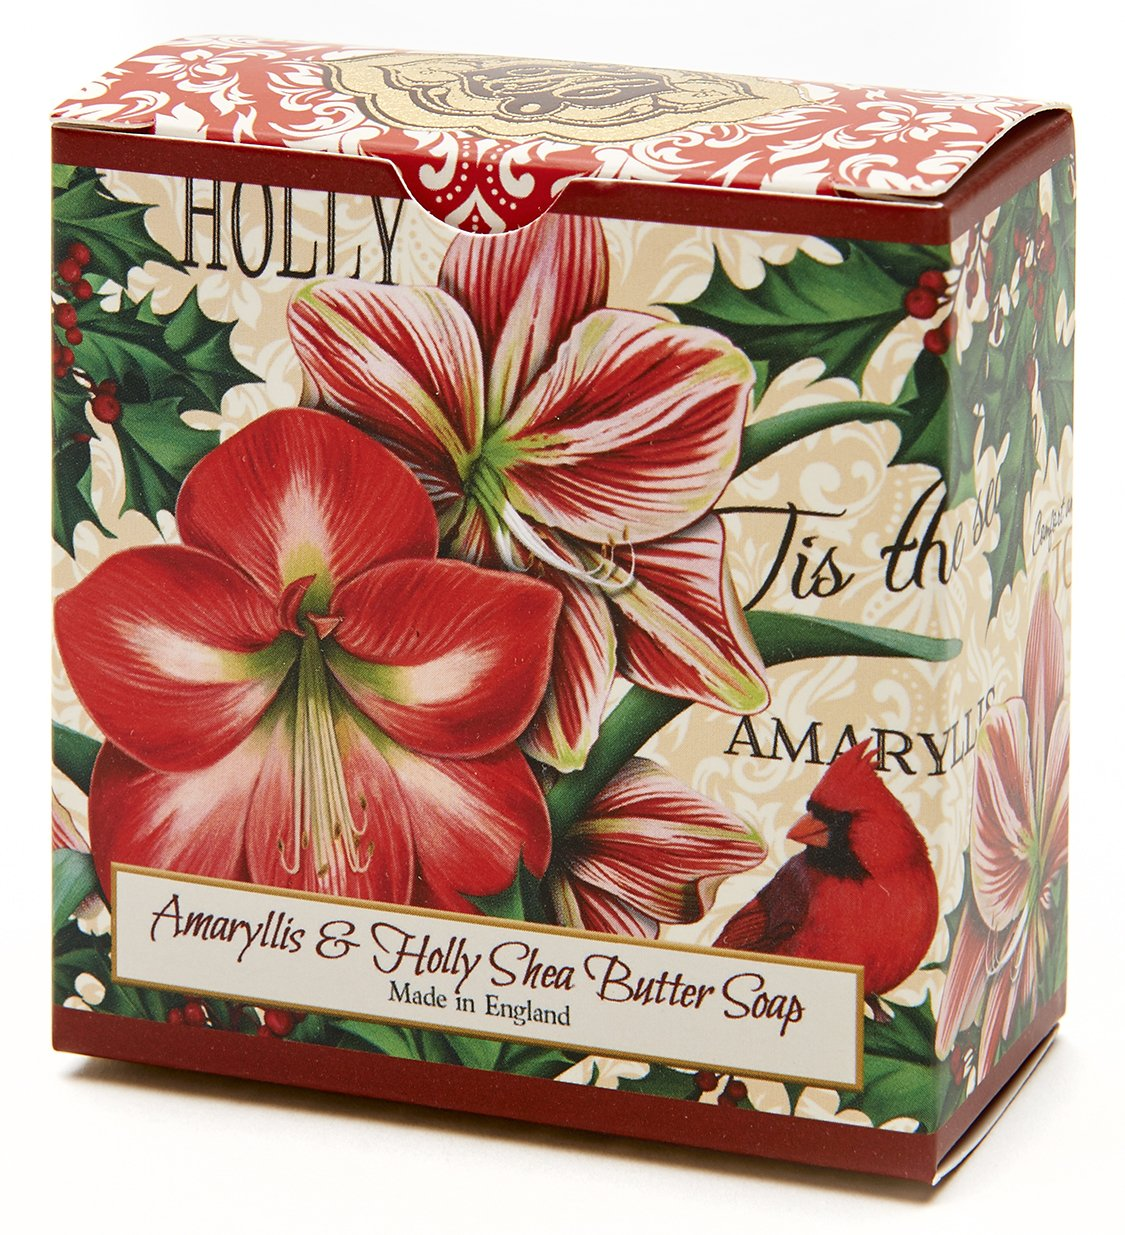 Amaryllis and Holly, Luxury Round, Beautifully Scented Shea Butter Soap Bar, Made in England, Triple Milled. Environmentally Friendly (Green). 3.5oz. TSC Giftables SPR18